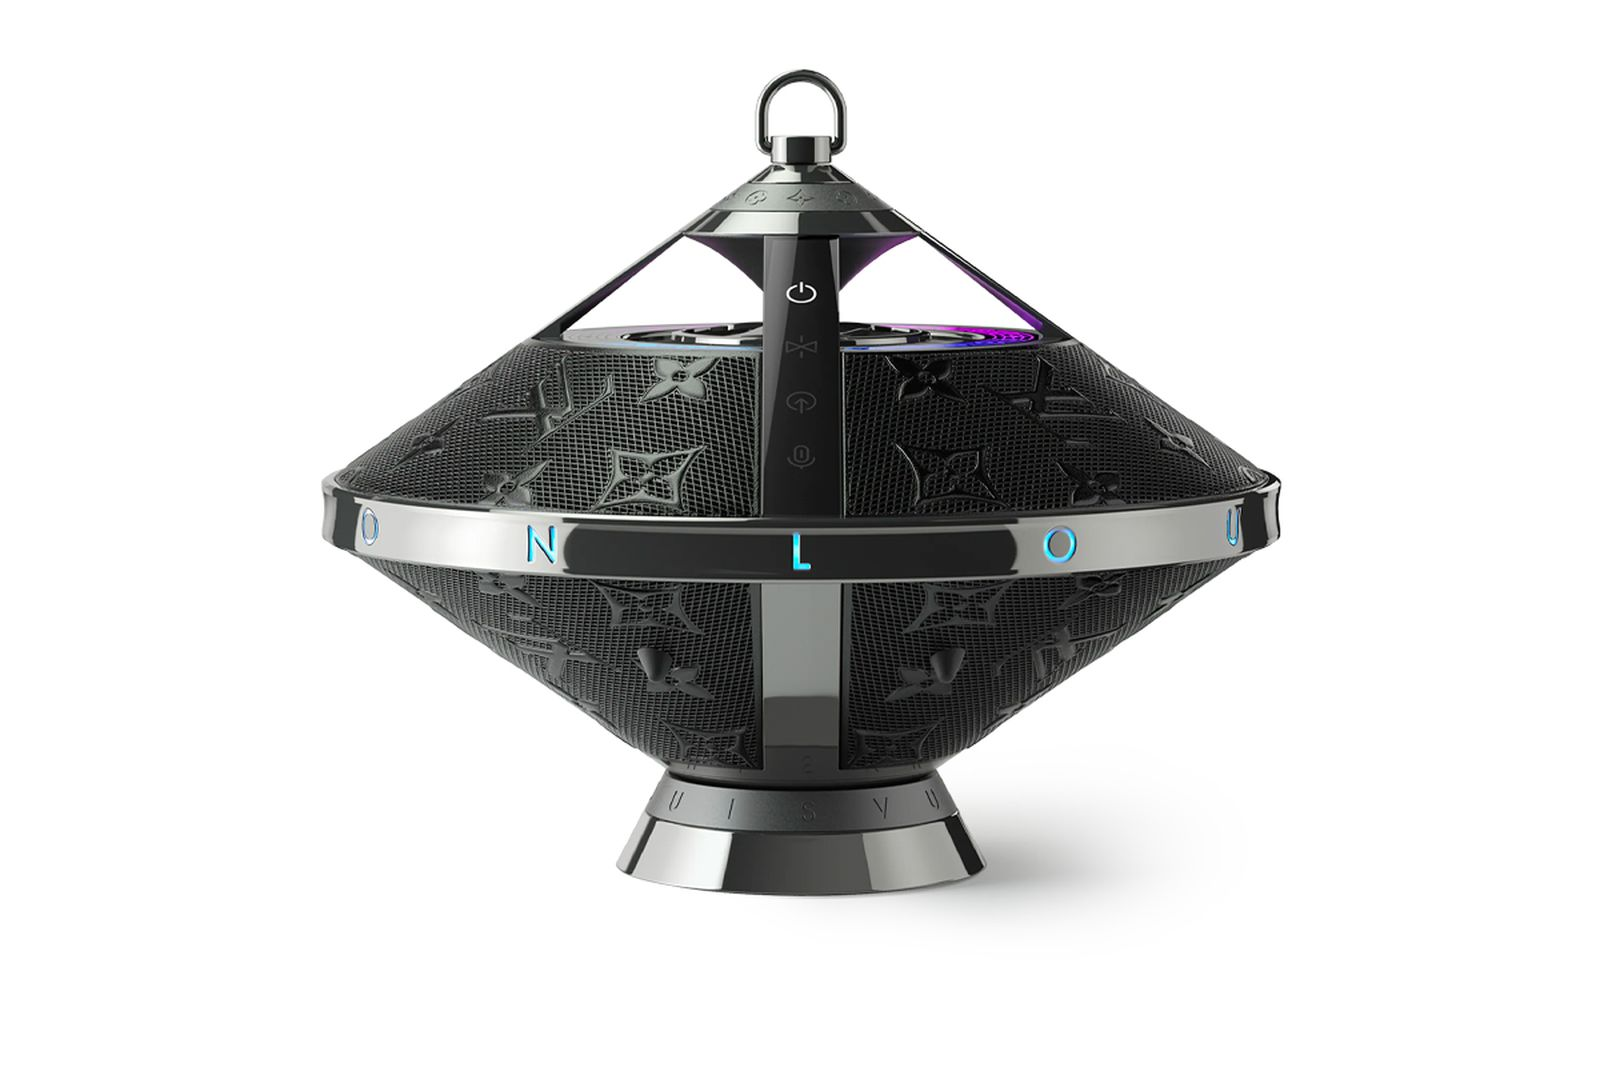 louis-vuitton-sold-3000-3000-ufo-speakers-on-the-first-day-alone-06